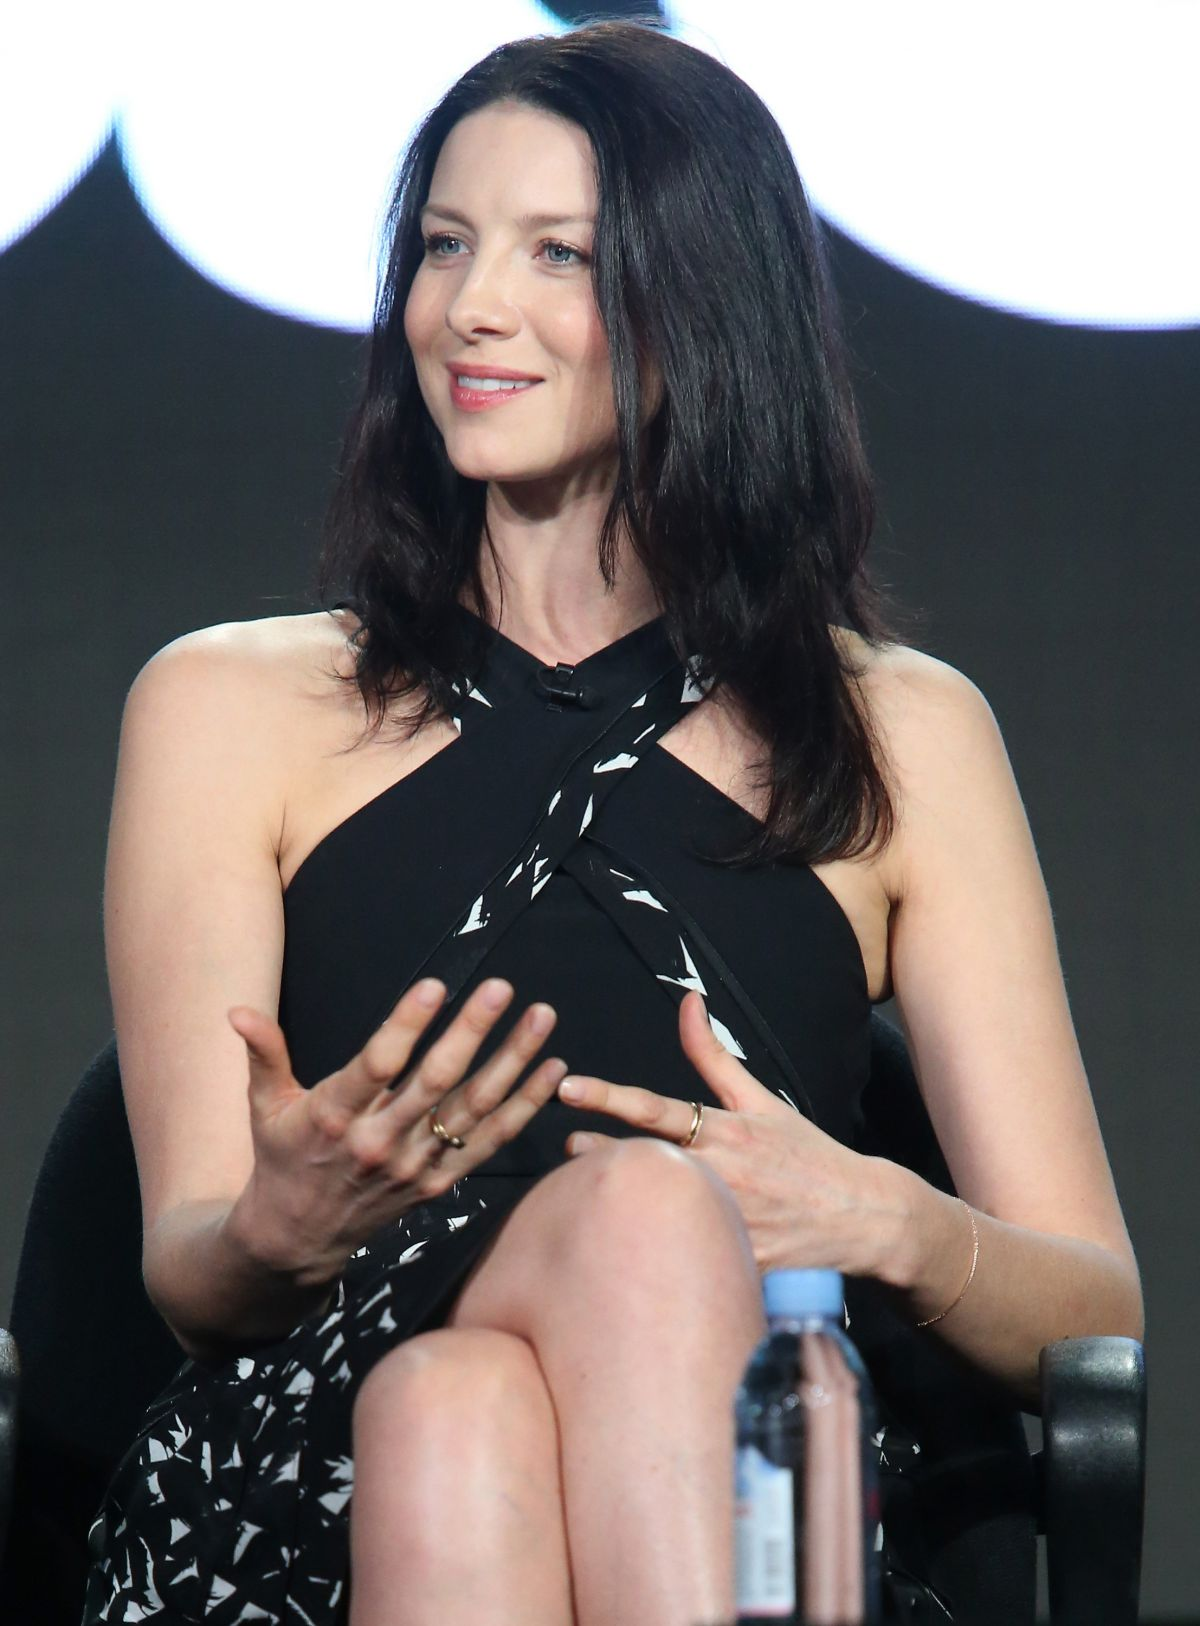 CAITRONA BALFE at 2016 TCA Winter Tour in Pasadena 01/08/2016